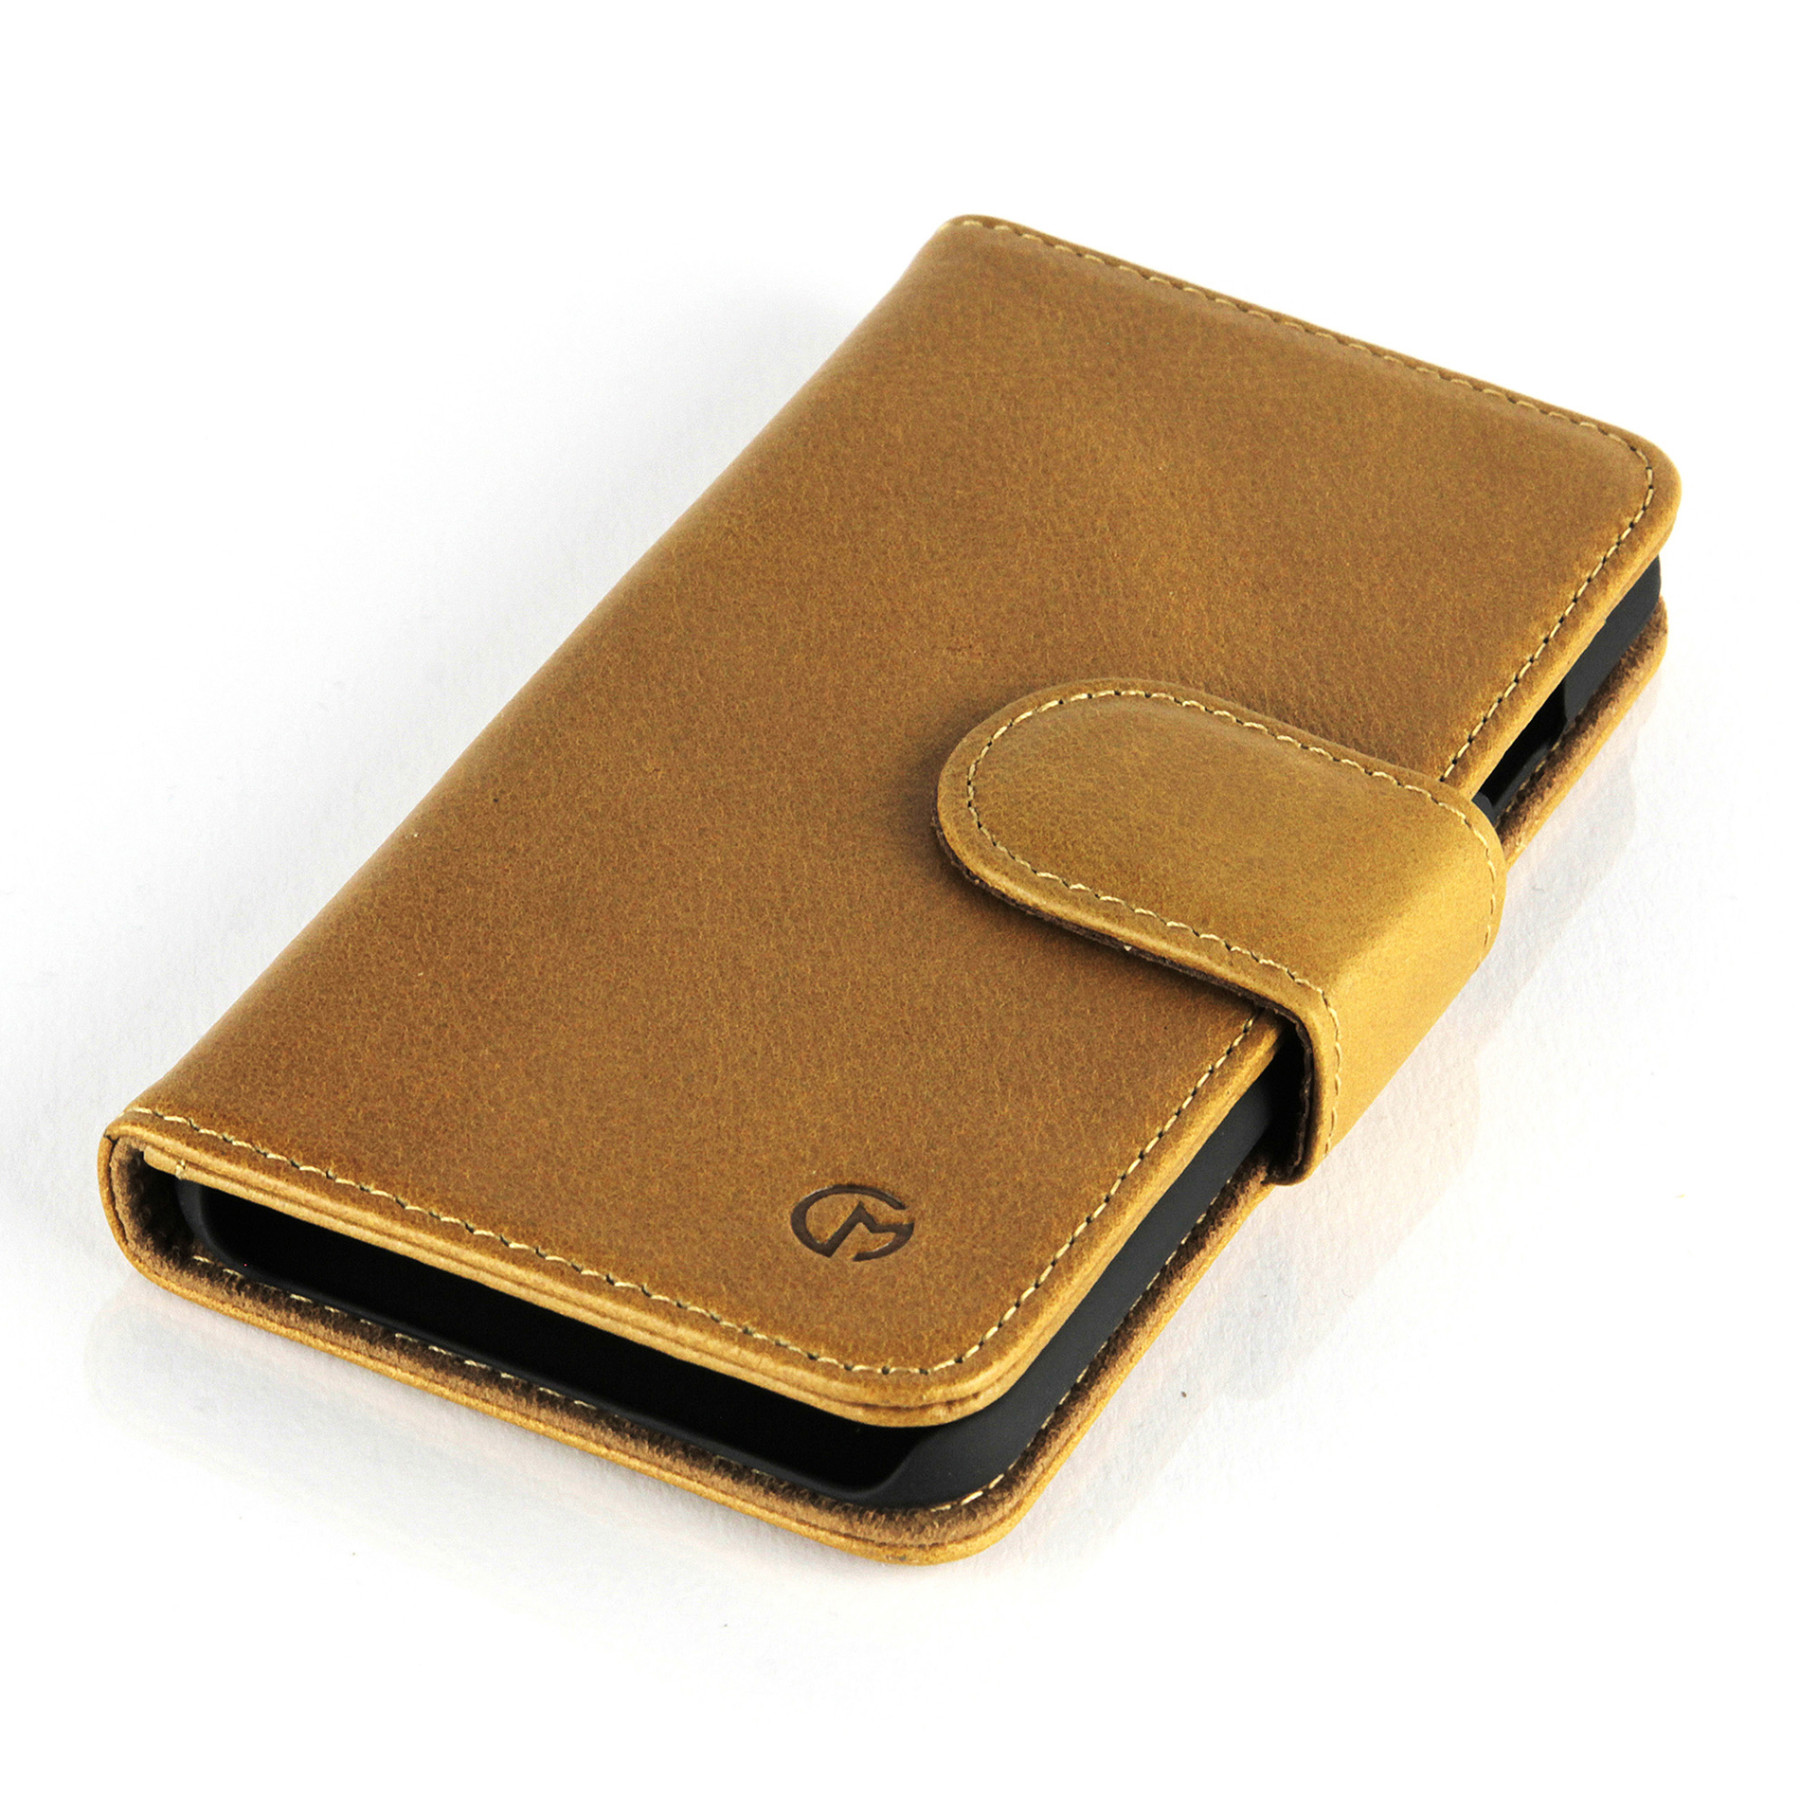 Apple iPhone 6 Plus Leather Wallet Case | Tan | Casemade USA